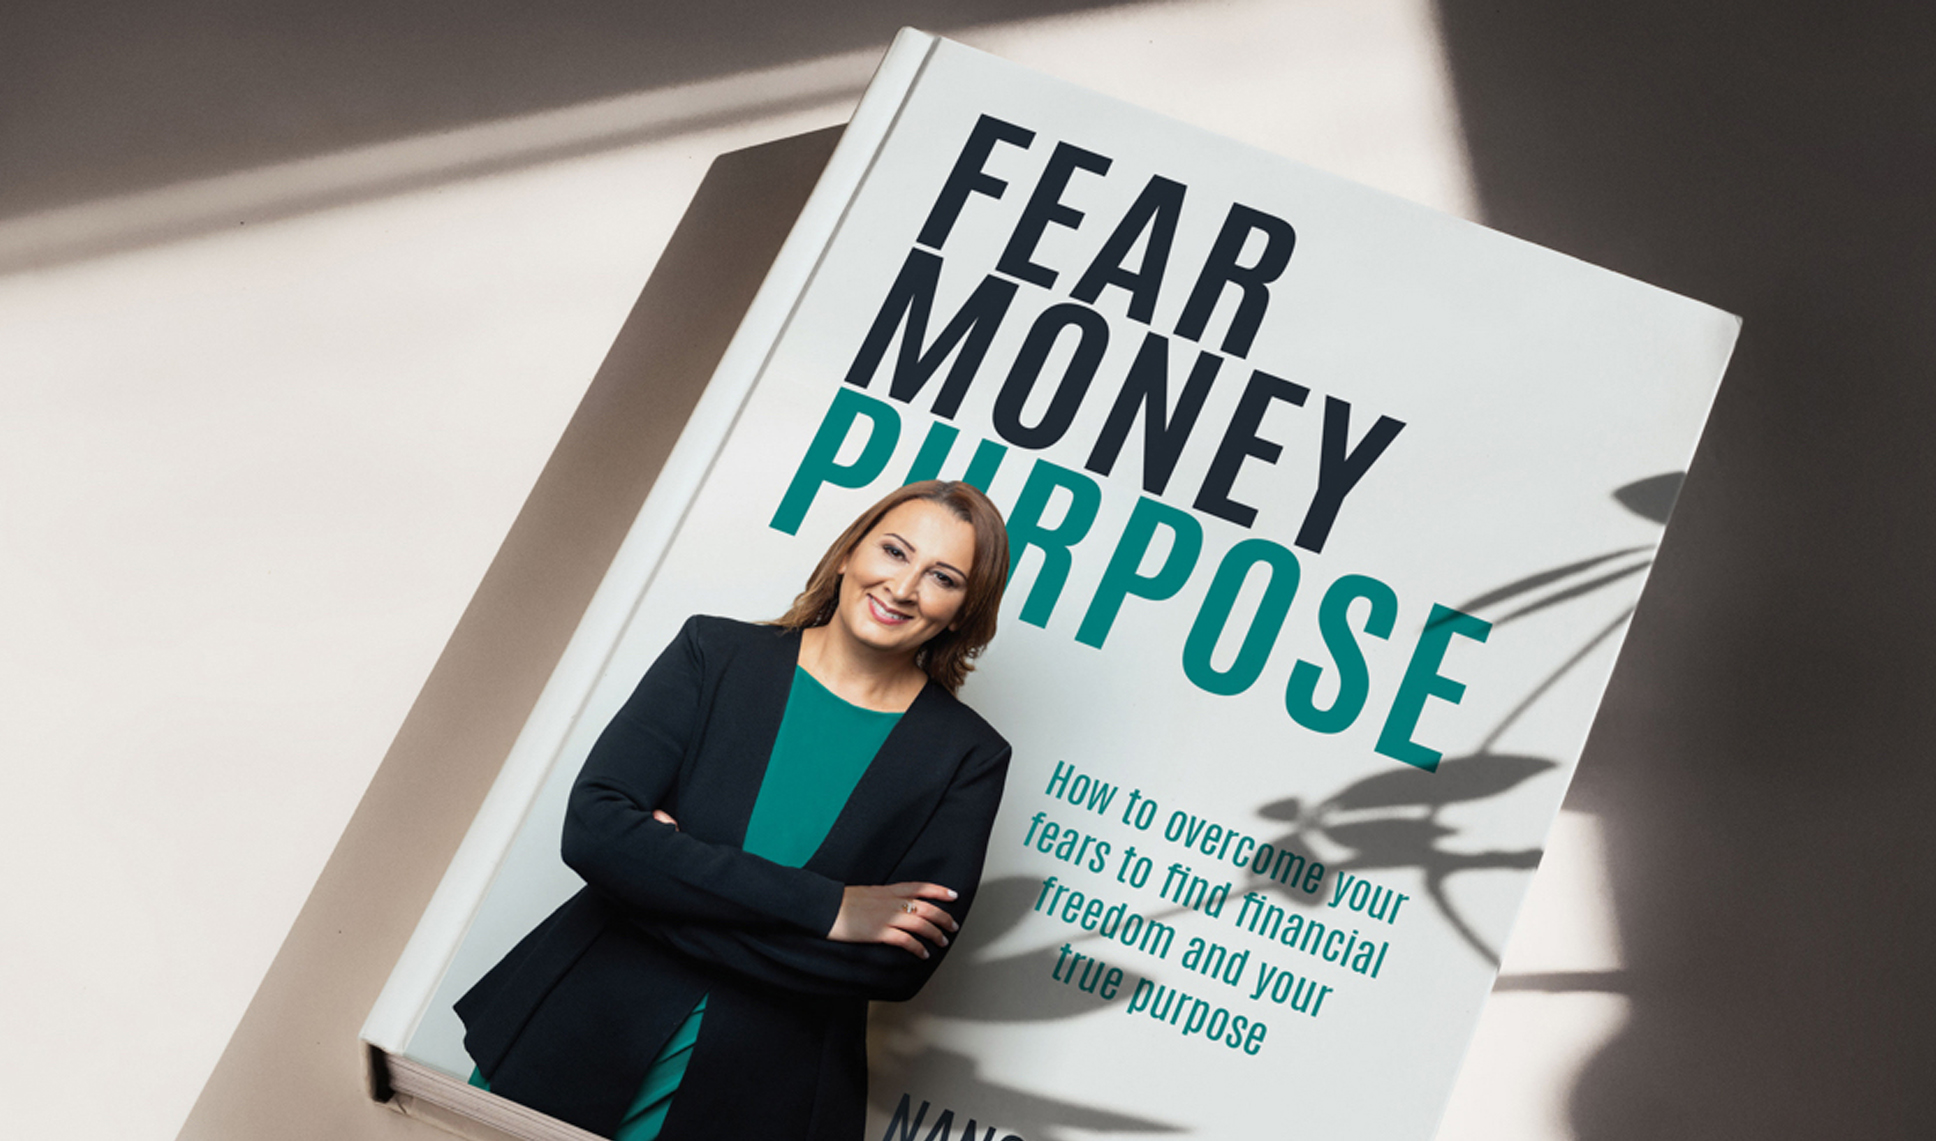 Fear Money Purpose - Conquer your money fears; master your money; find your purpose. Sounds simple, right? If this sounds equal parts terrifying, exciting and life-changing, this is the book for you.